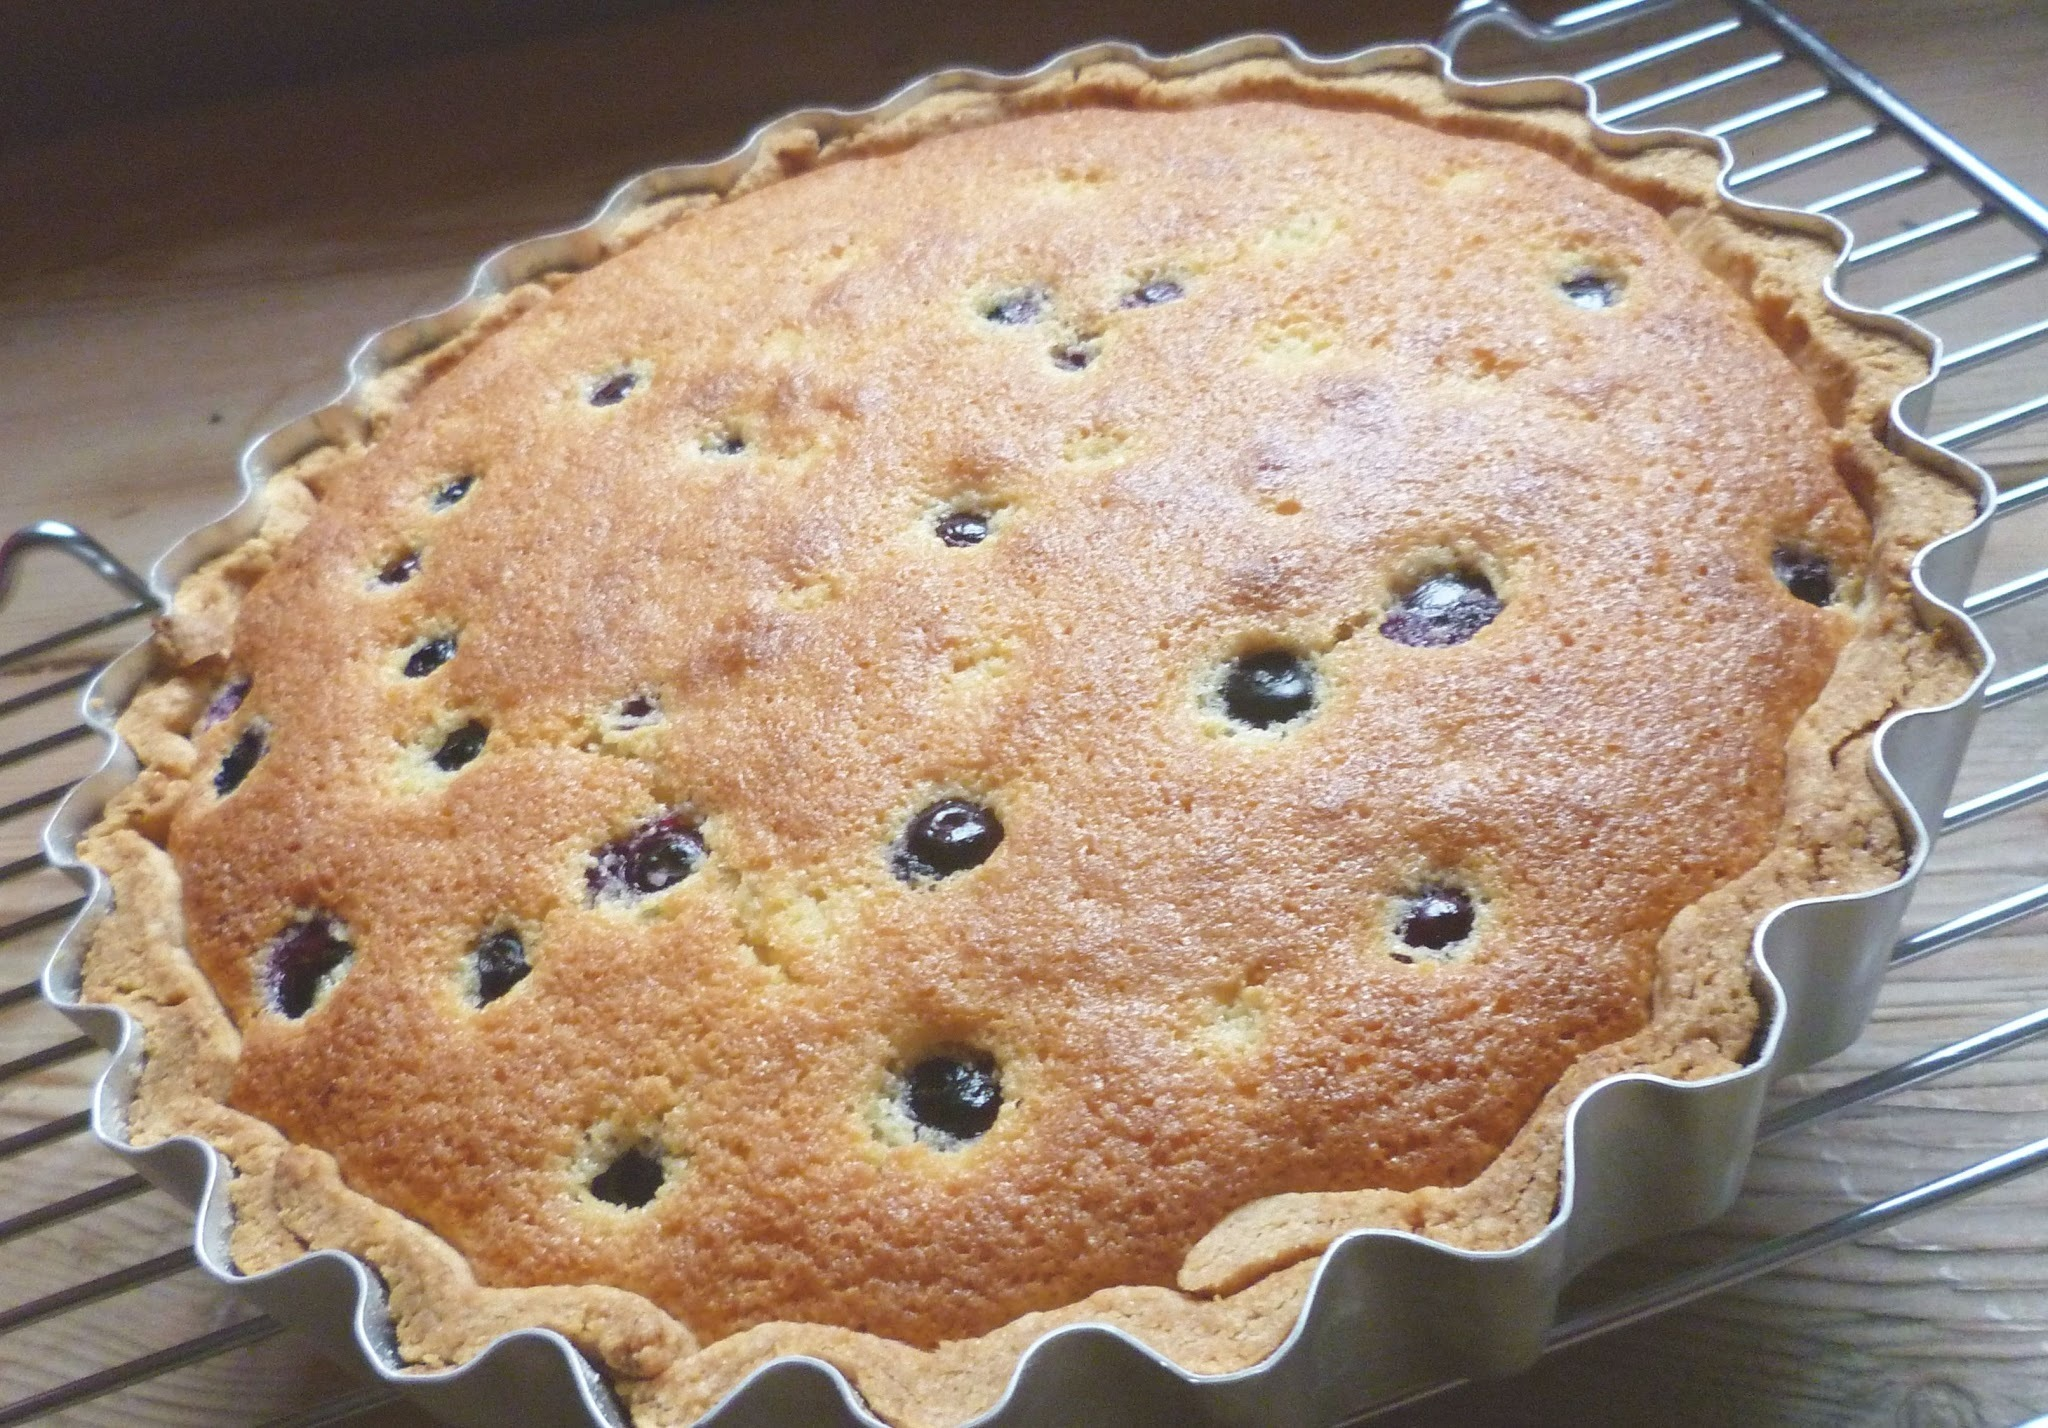 'Bake it well' blueberry, lemon and raspberry jam tart